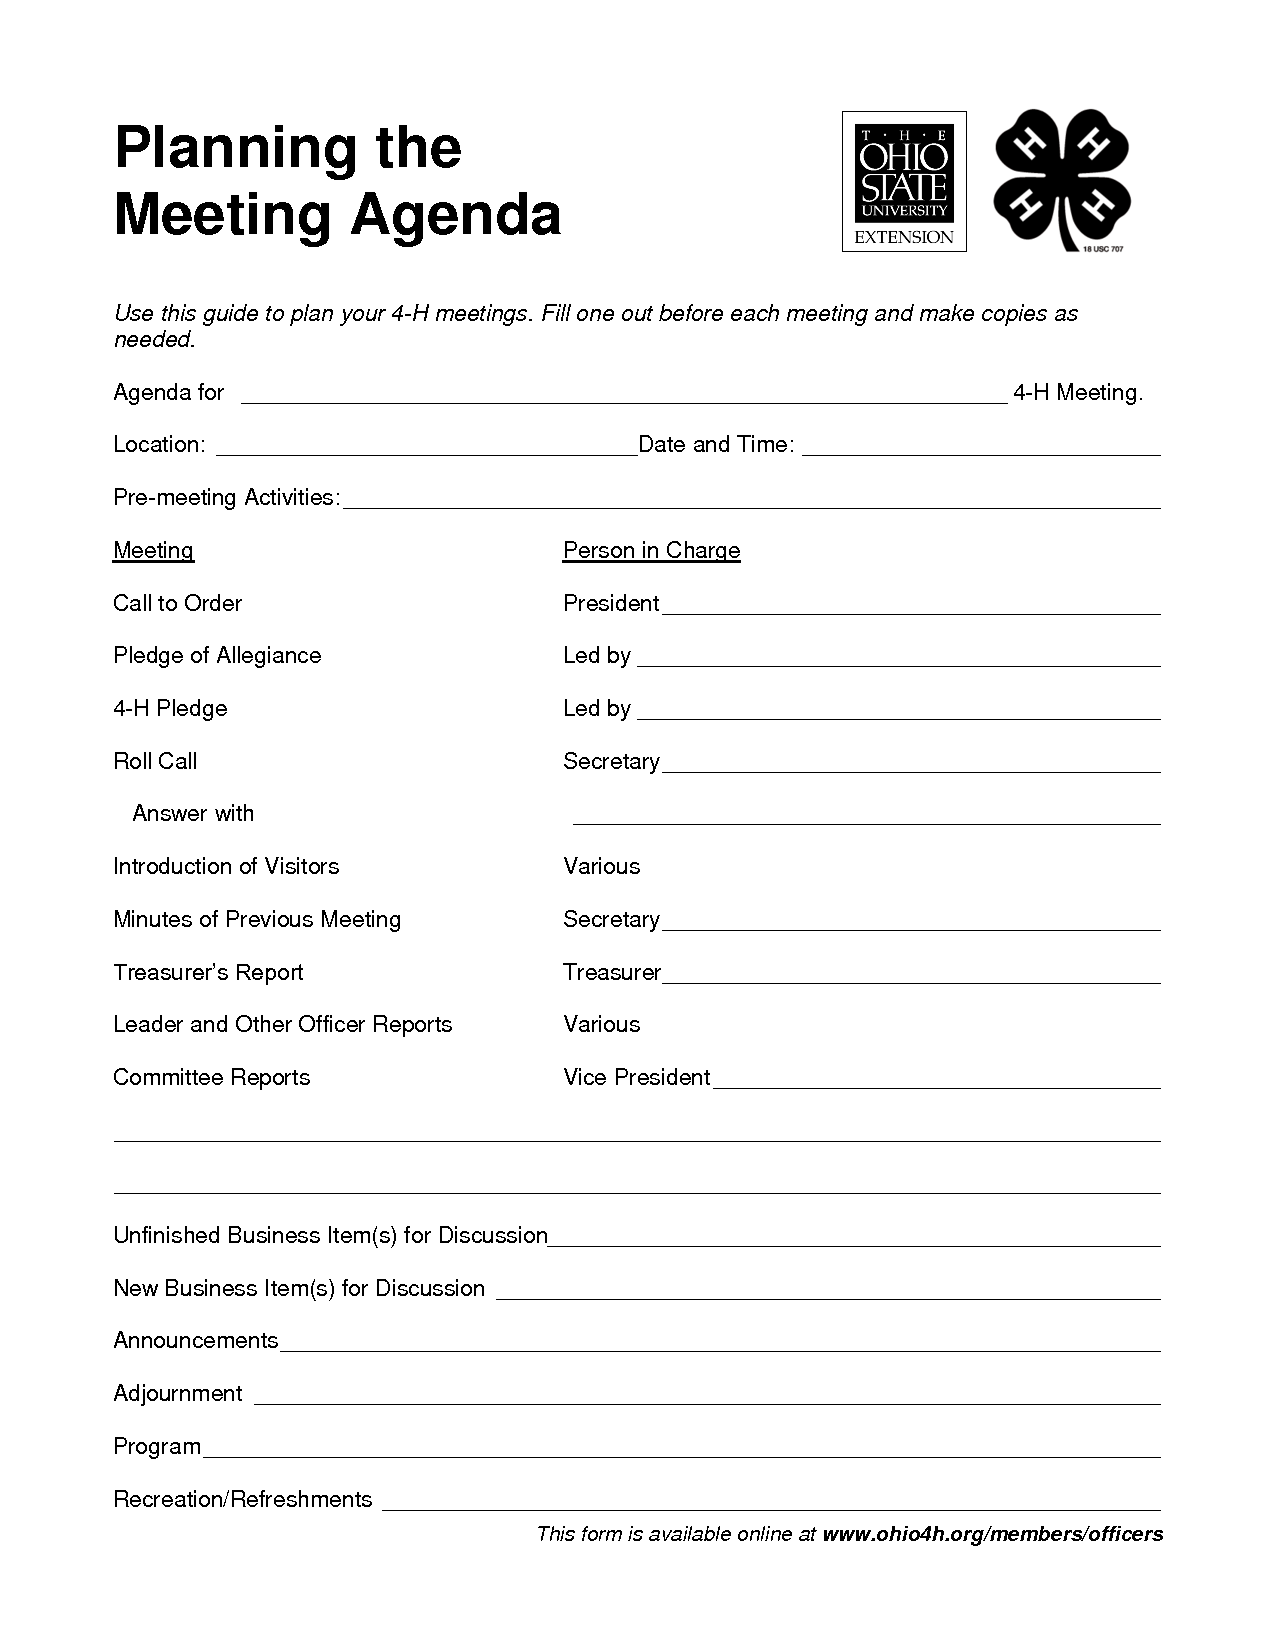 H Meeting Agenda Template  Google Search  H  Ffa